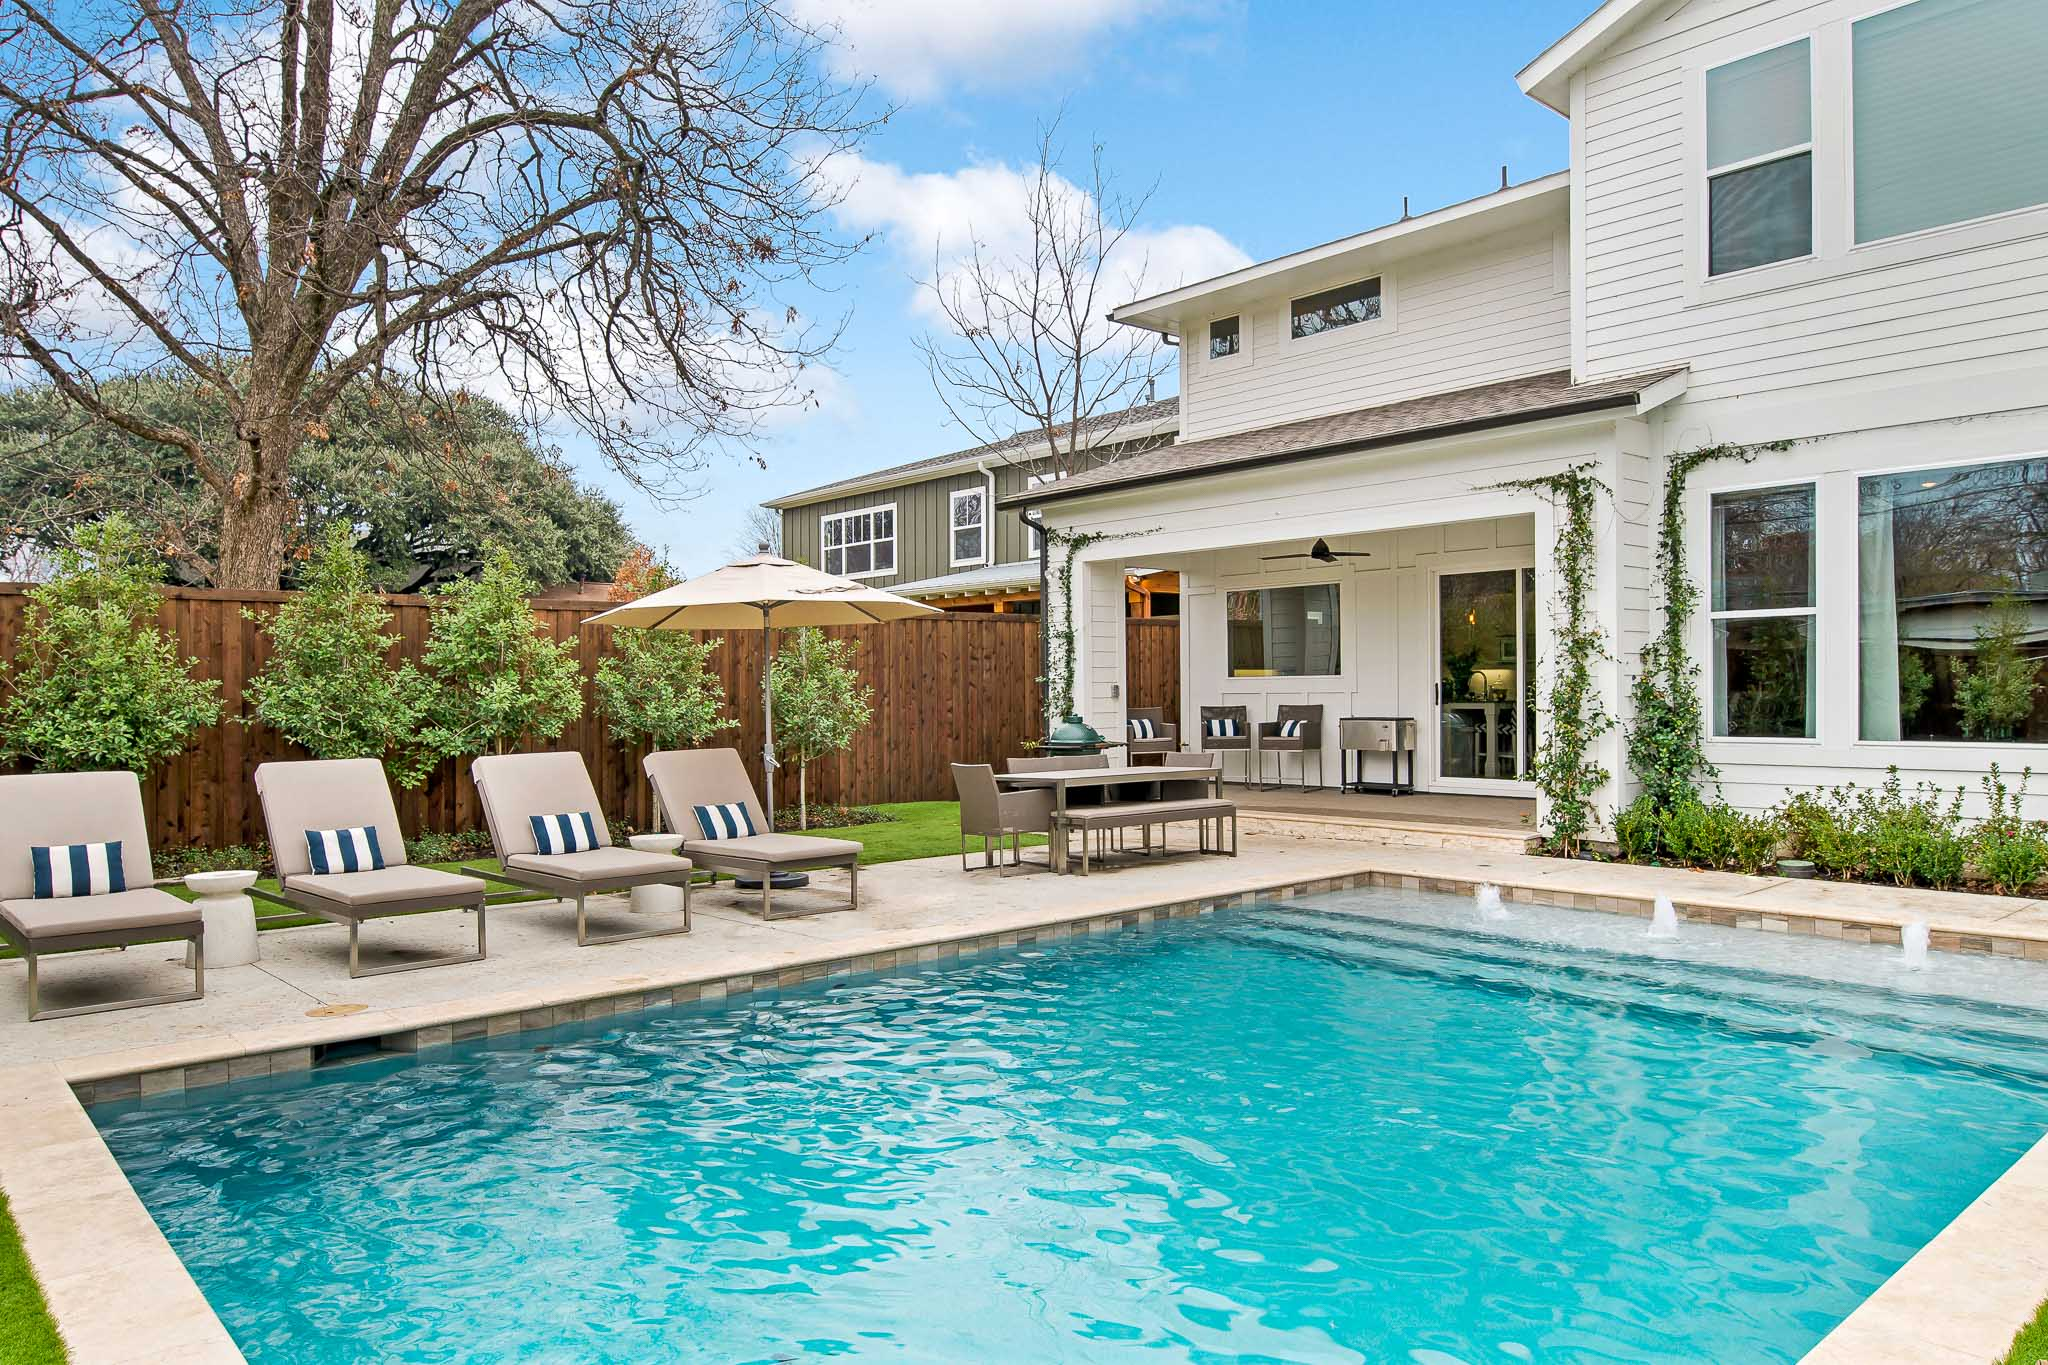 Dallas Air B and B photographed for listing